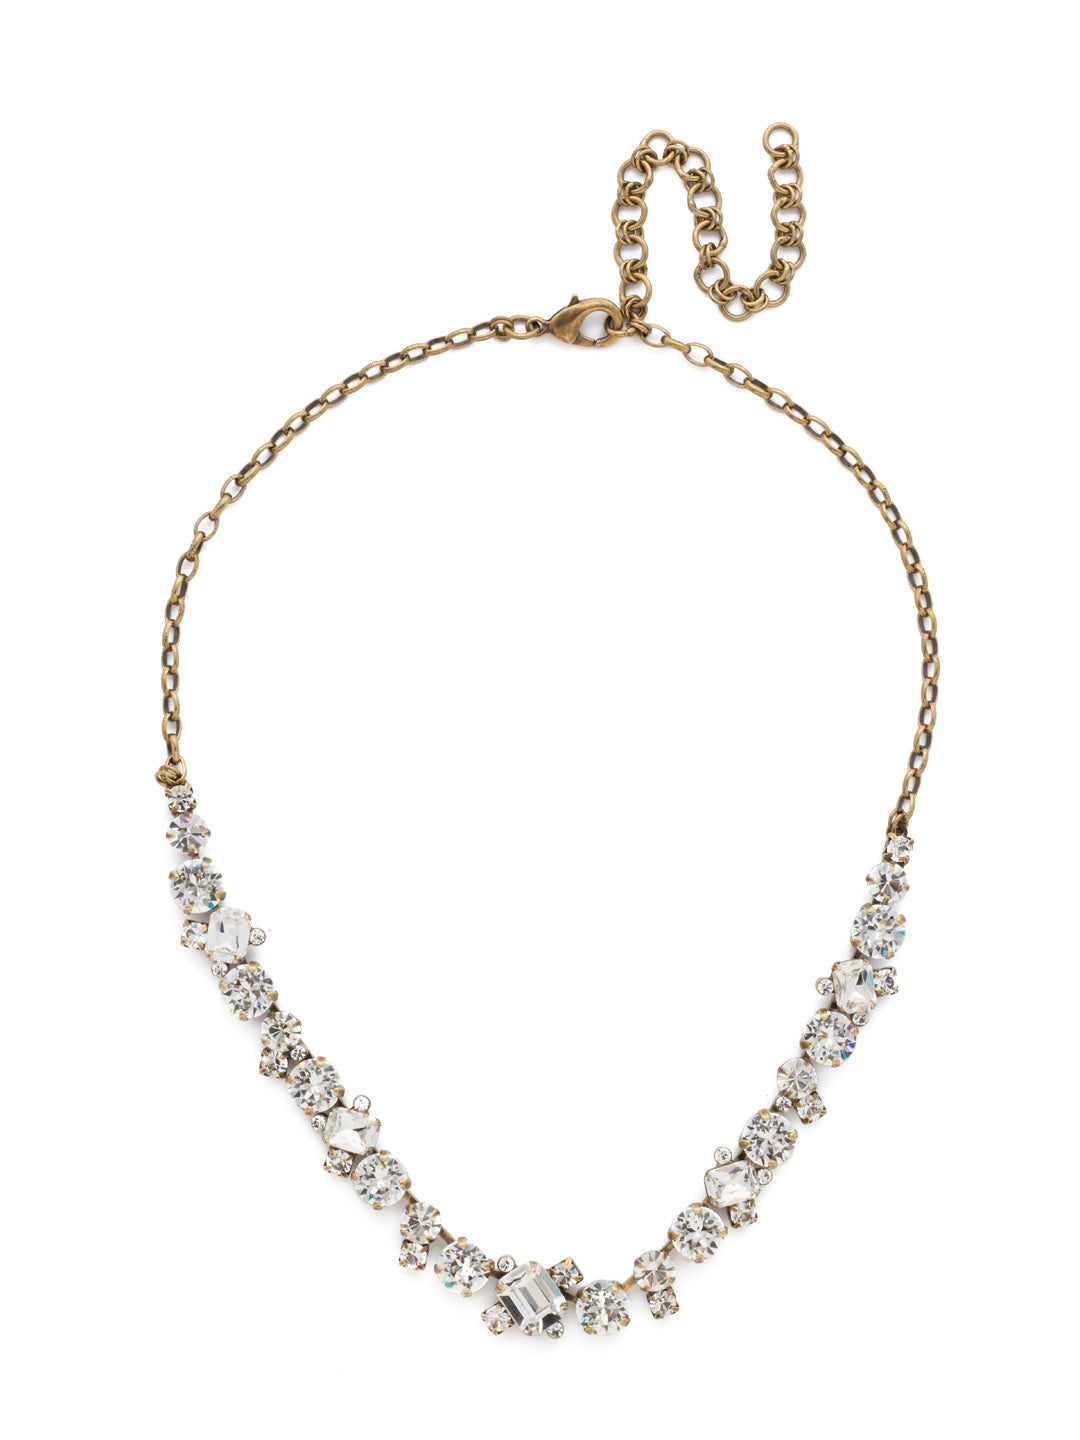 Novelty Multi-Cut Crystal Necklace - NDB78AGCRY